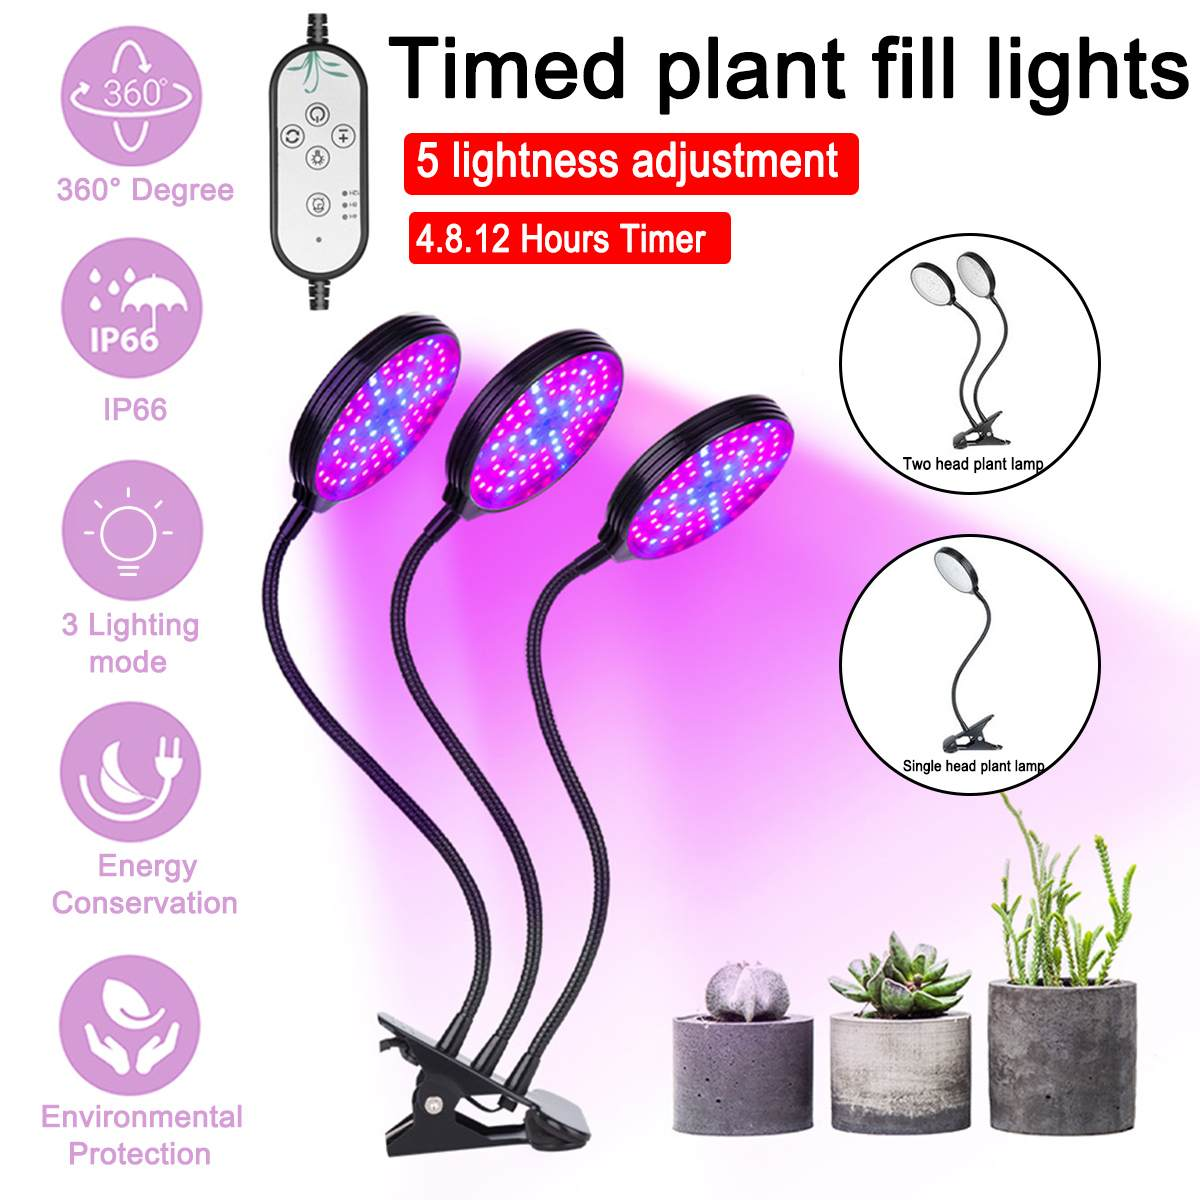 120W Dimmable Plant Grow Light 1/2/3 Heads 234 LED Beads Timing Full Spectrum Phyto Grow Tube Lamp Greenhouse Fitolamp Box Tent